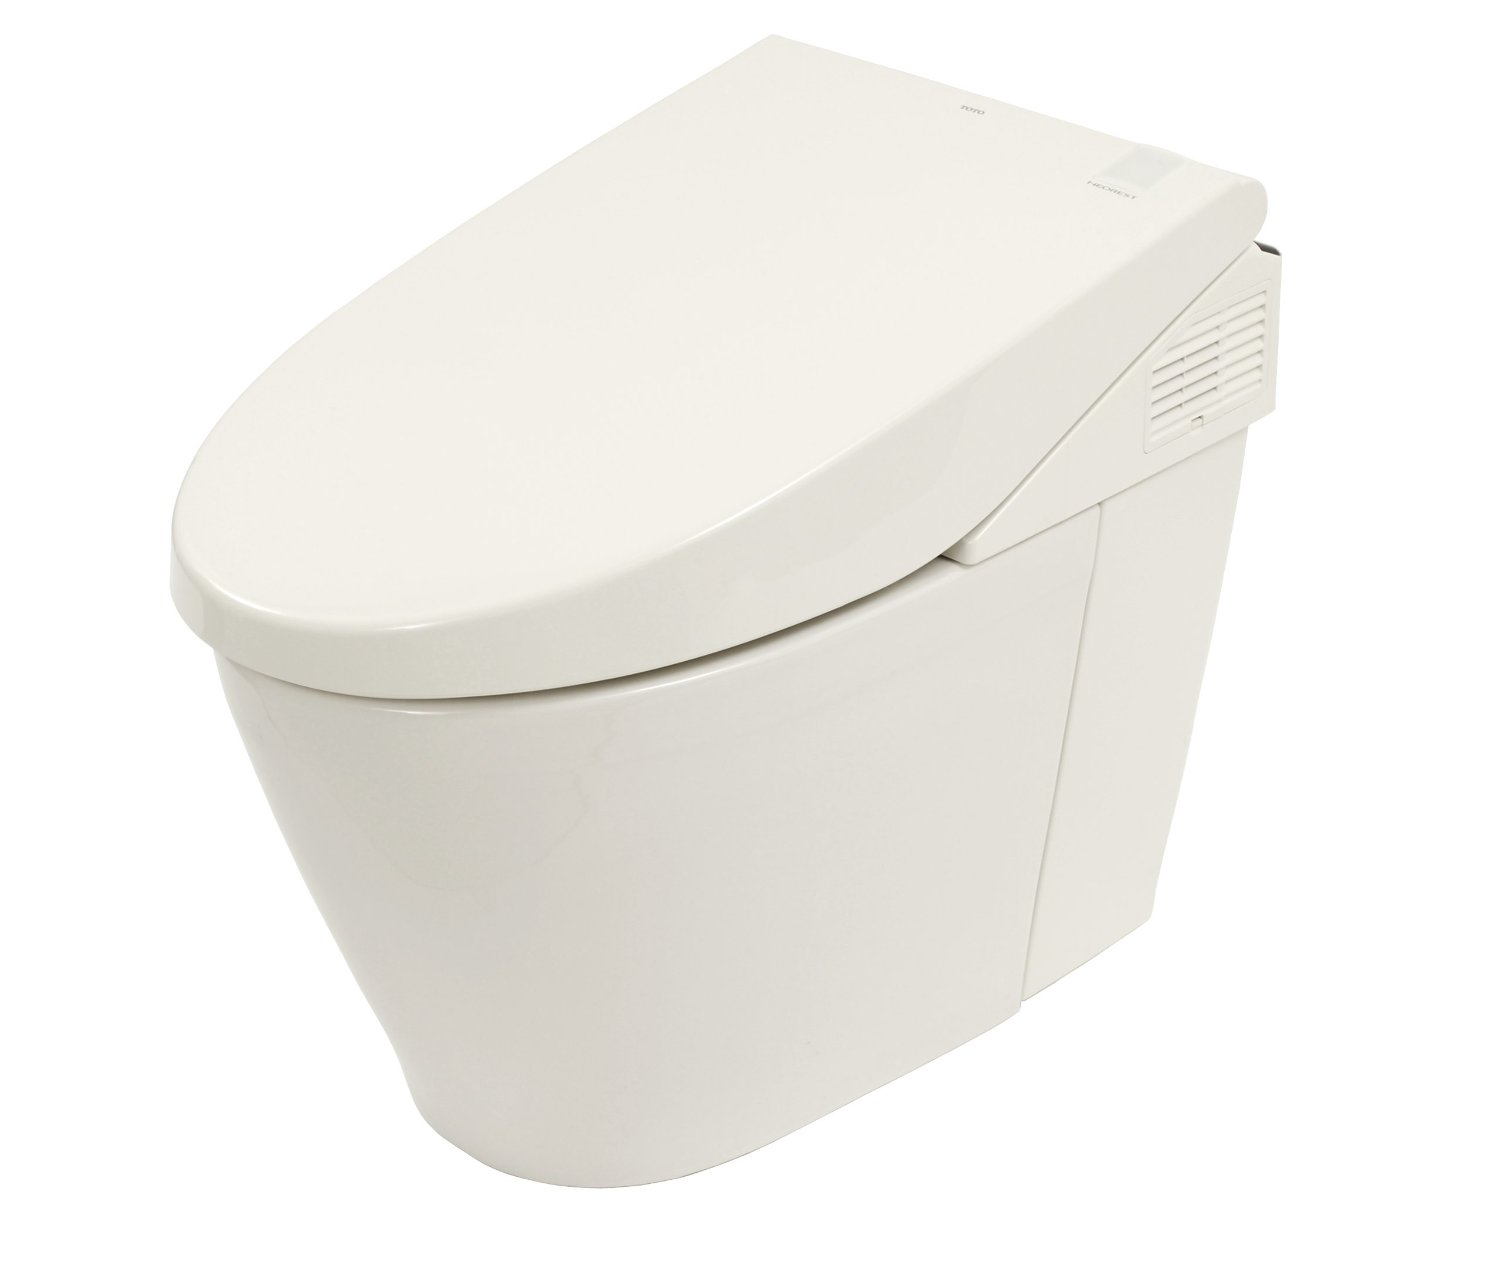 toto neorest toilet review